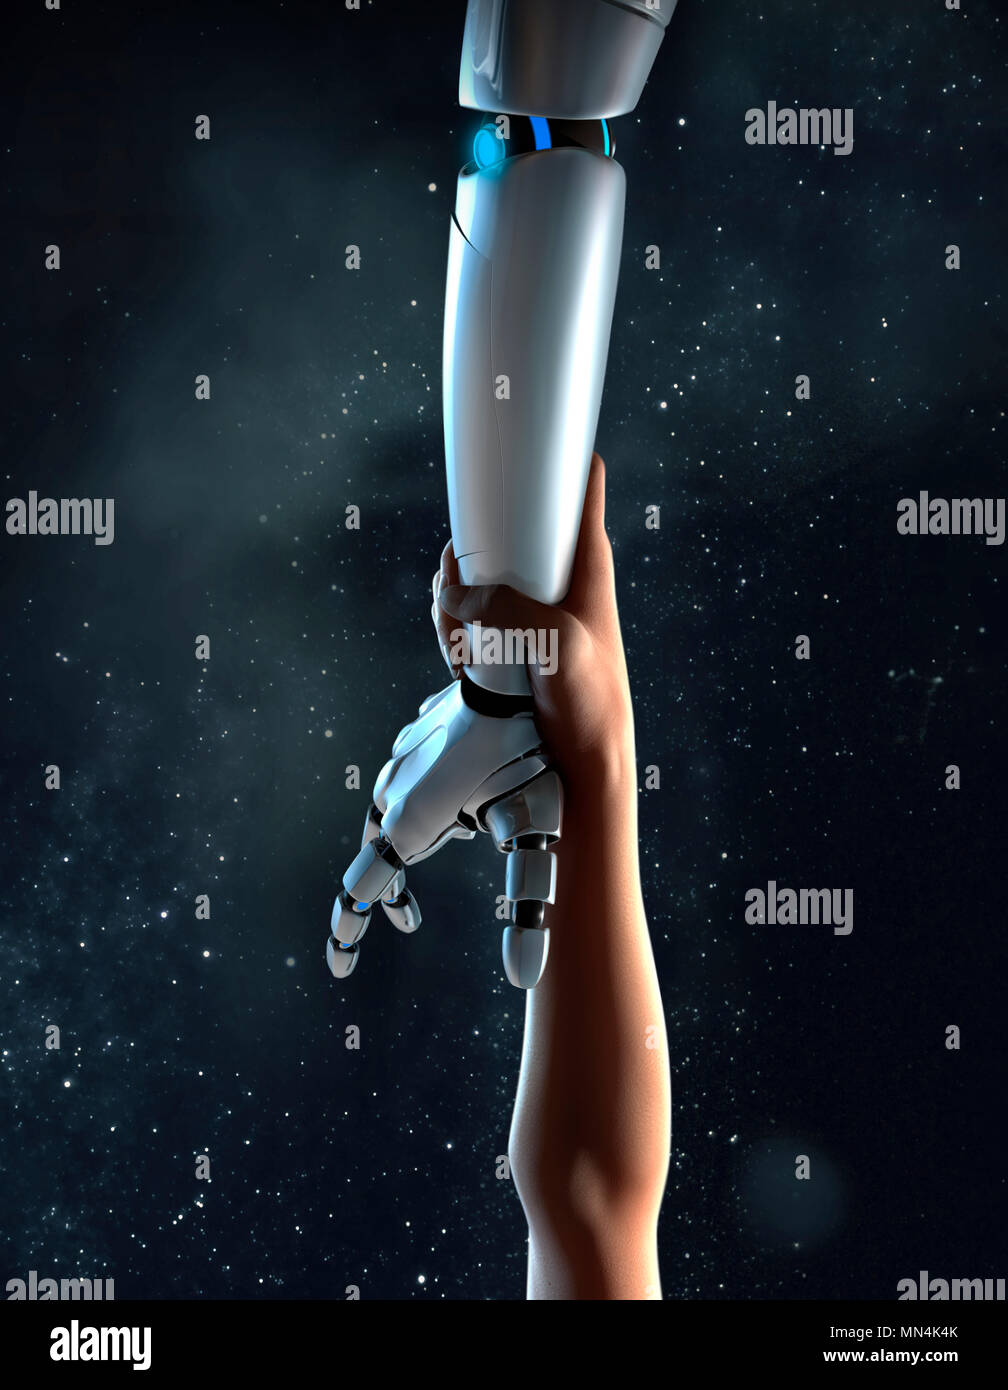 Computer generated image arm reaching for robotic arm Stock Photo